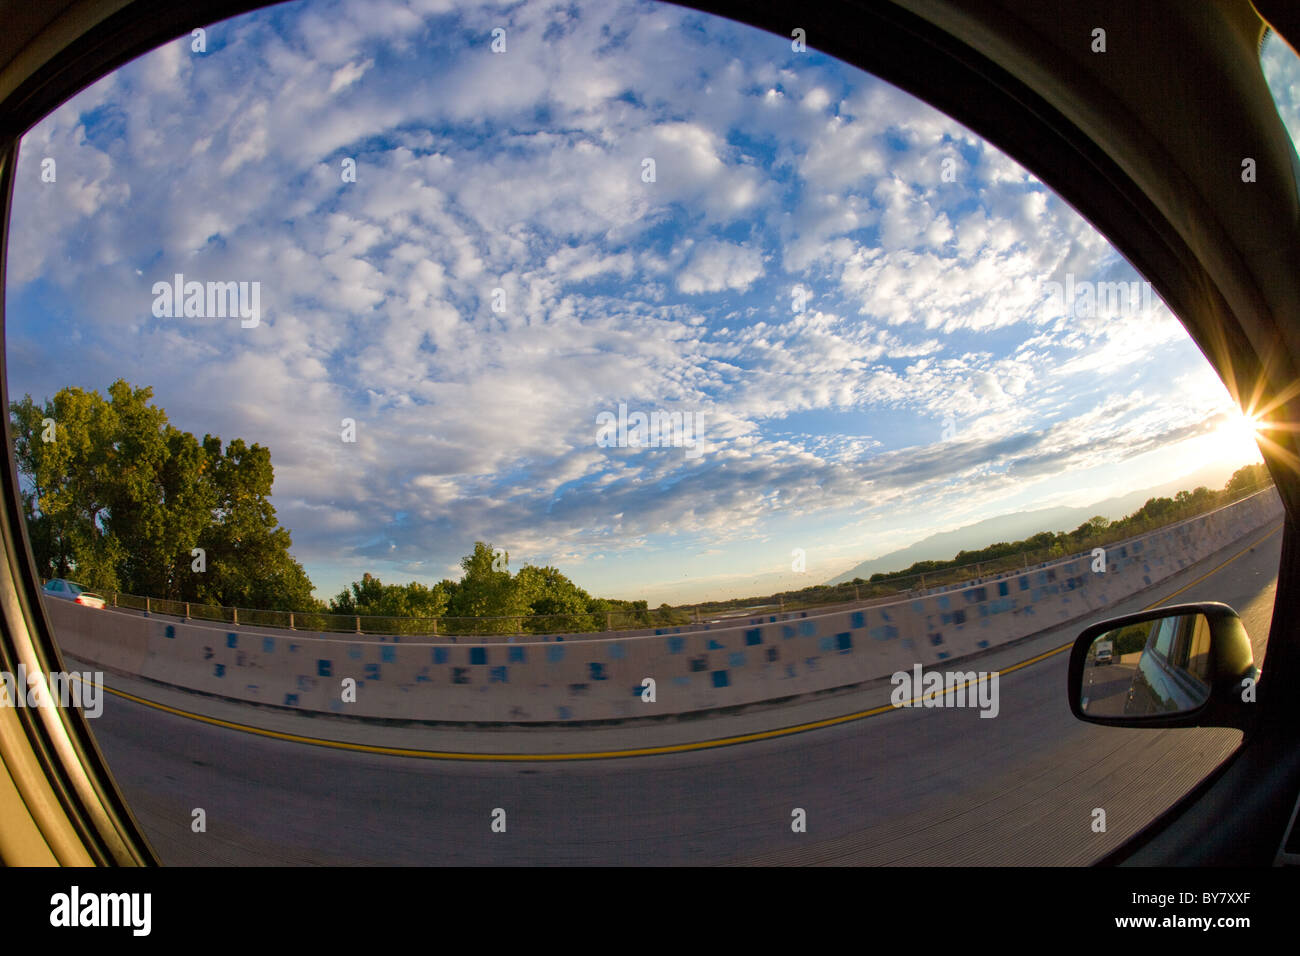 blue sky of New Mexico, USA, as seen through car window, fisheye lens - Stock Image